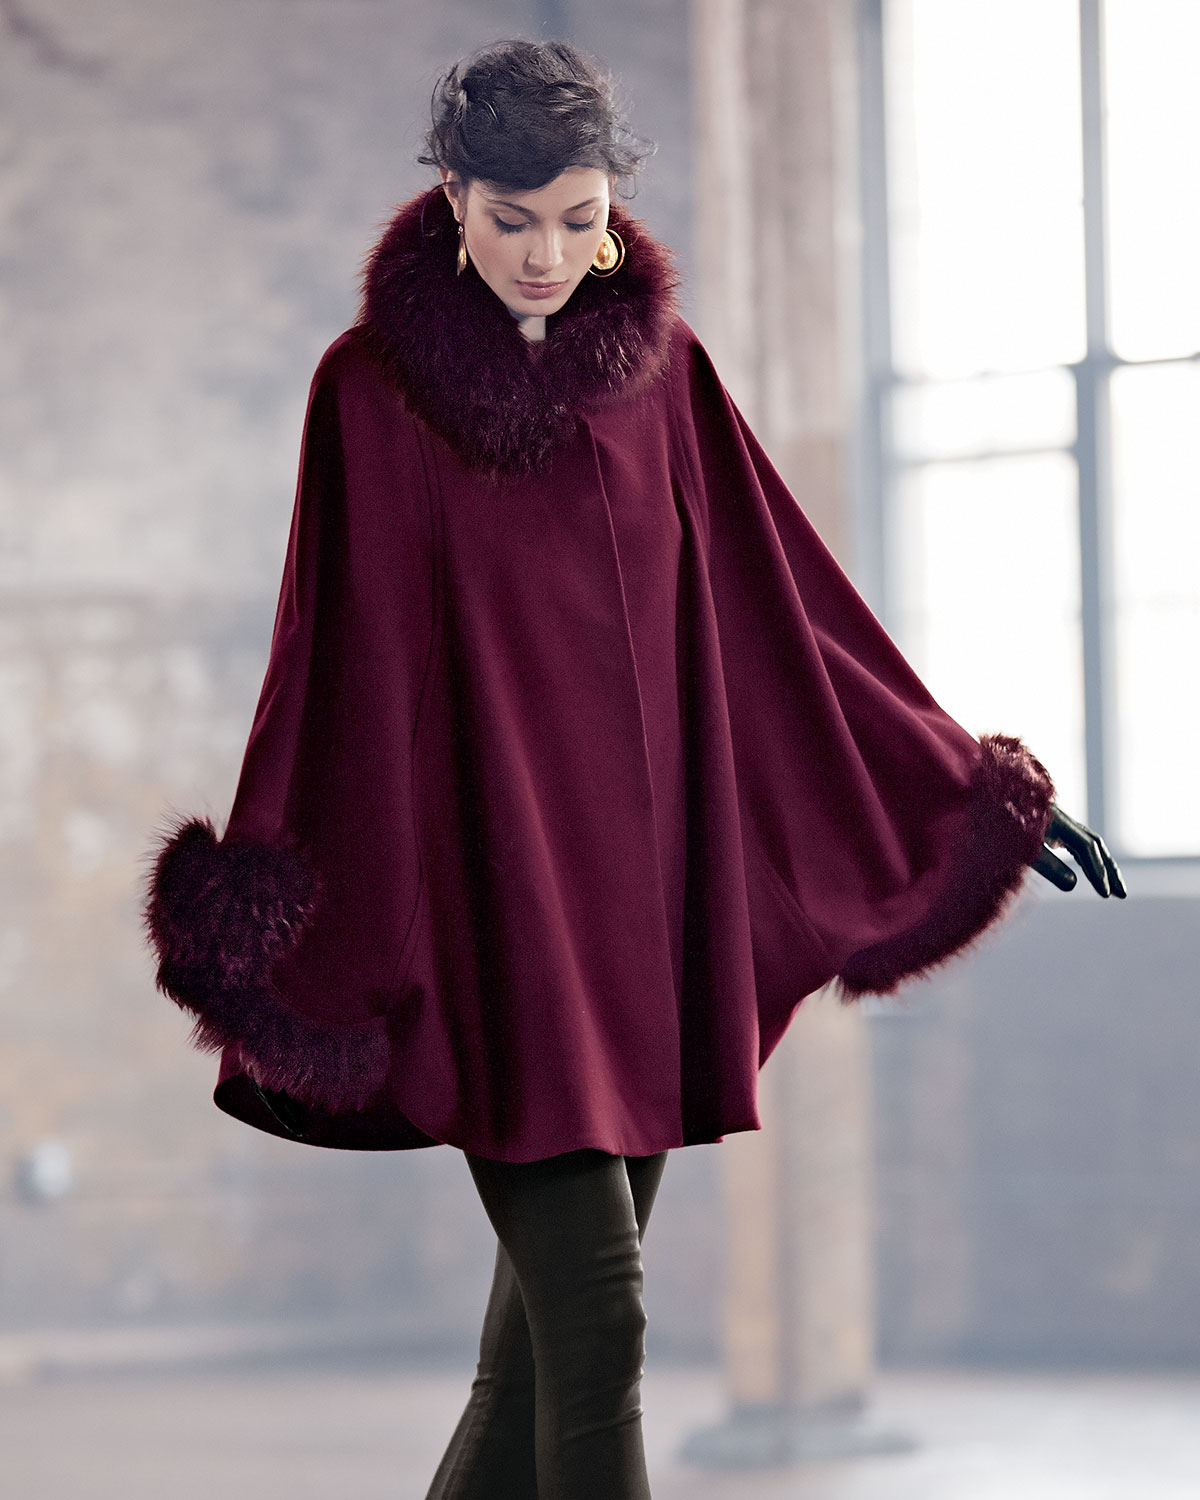 Sofia cashmere Fur-Trimmed Button-Front Cape Coat in Red | Lyst